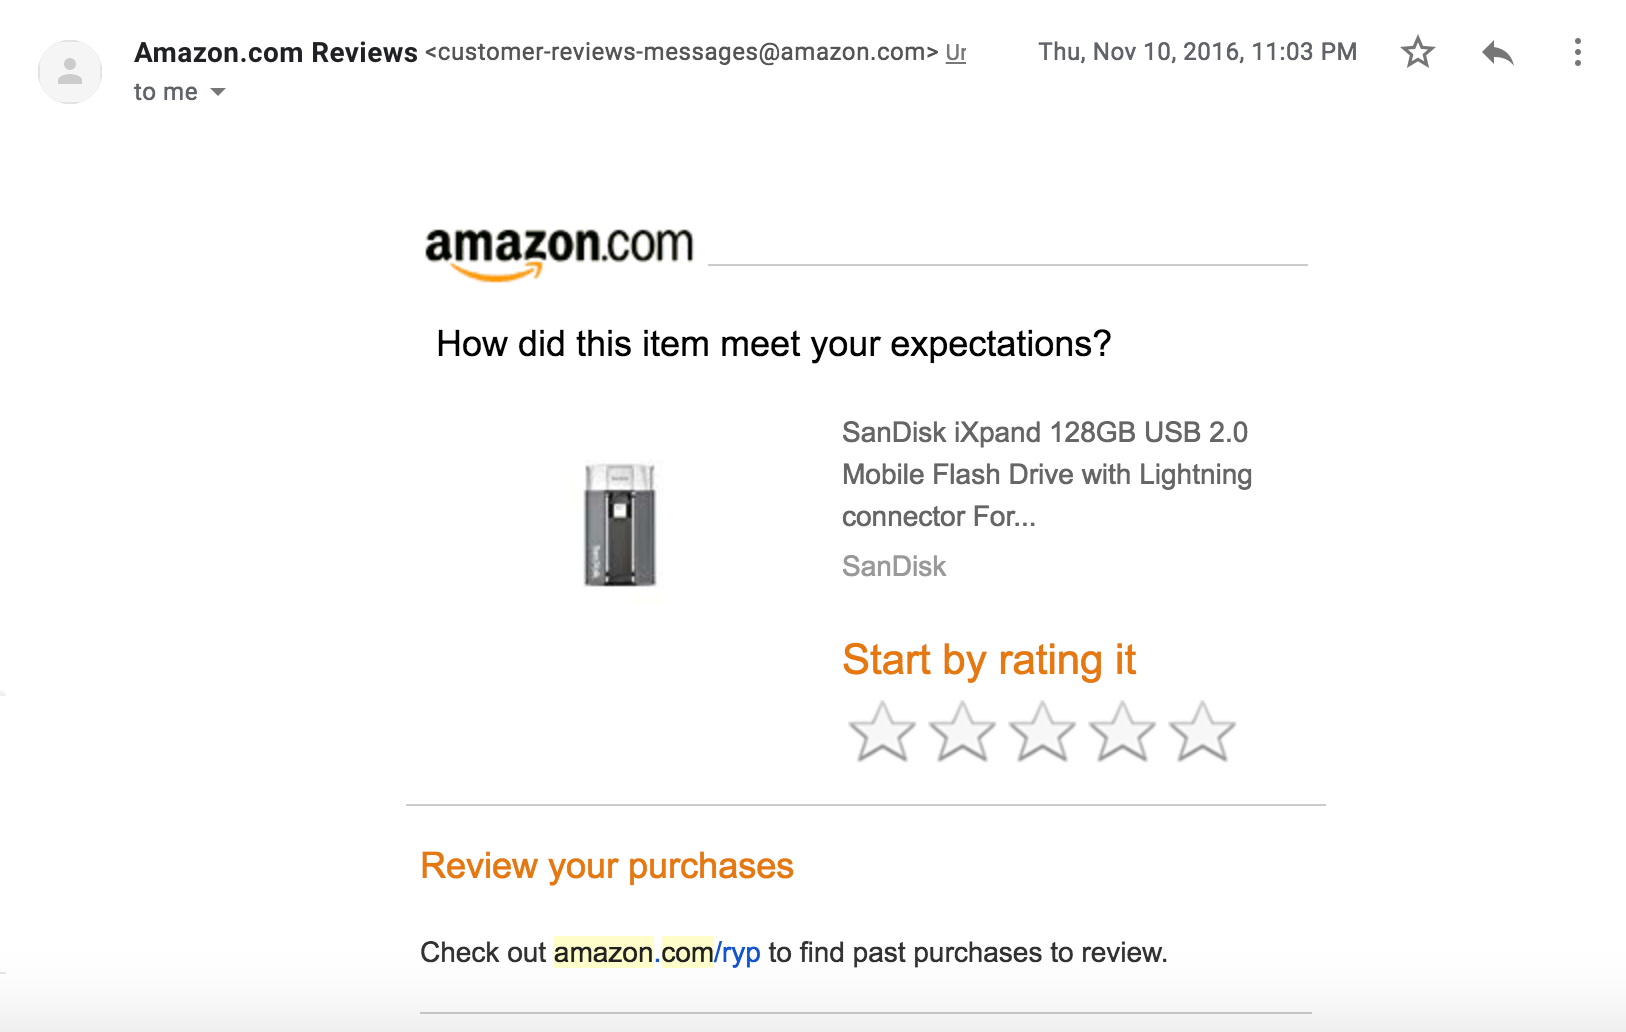 amazon asks for product reviews and feedback to gauge customer satisfaction